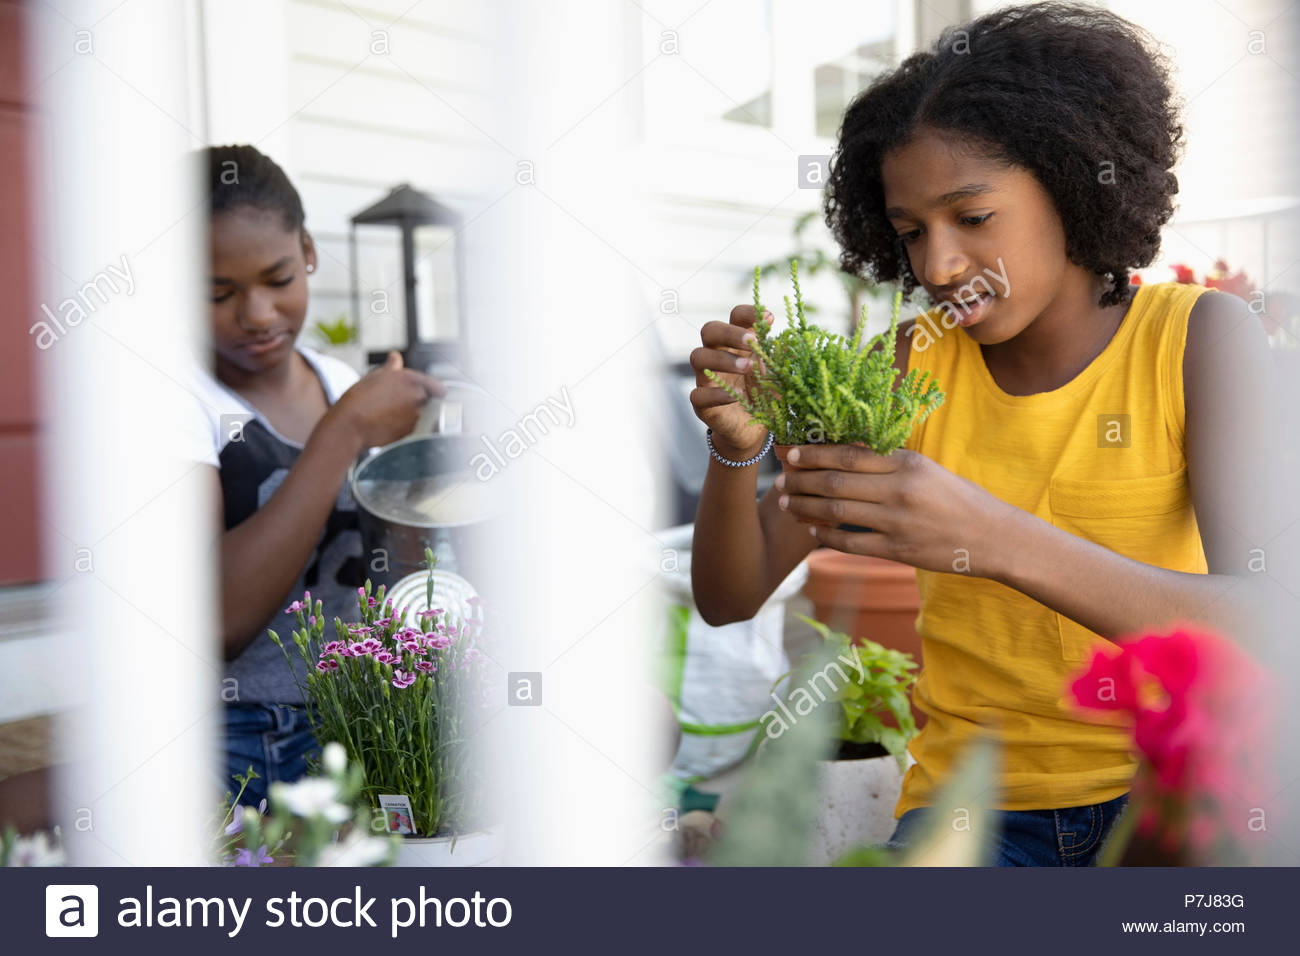 Tween sisters potting plants on front stoop - Stock Image